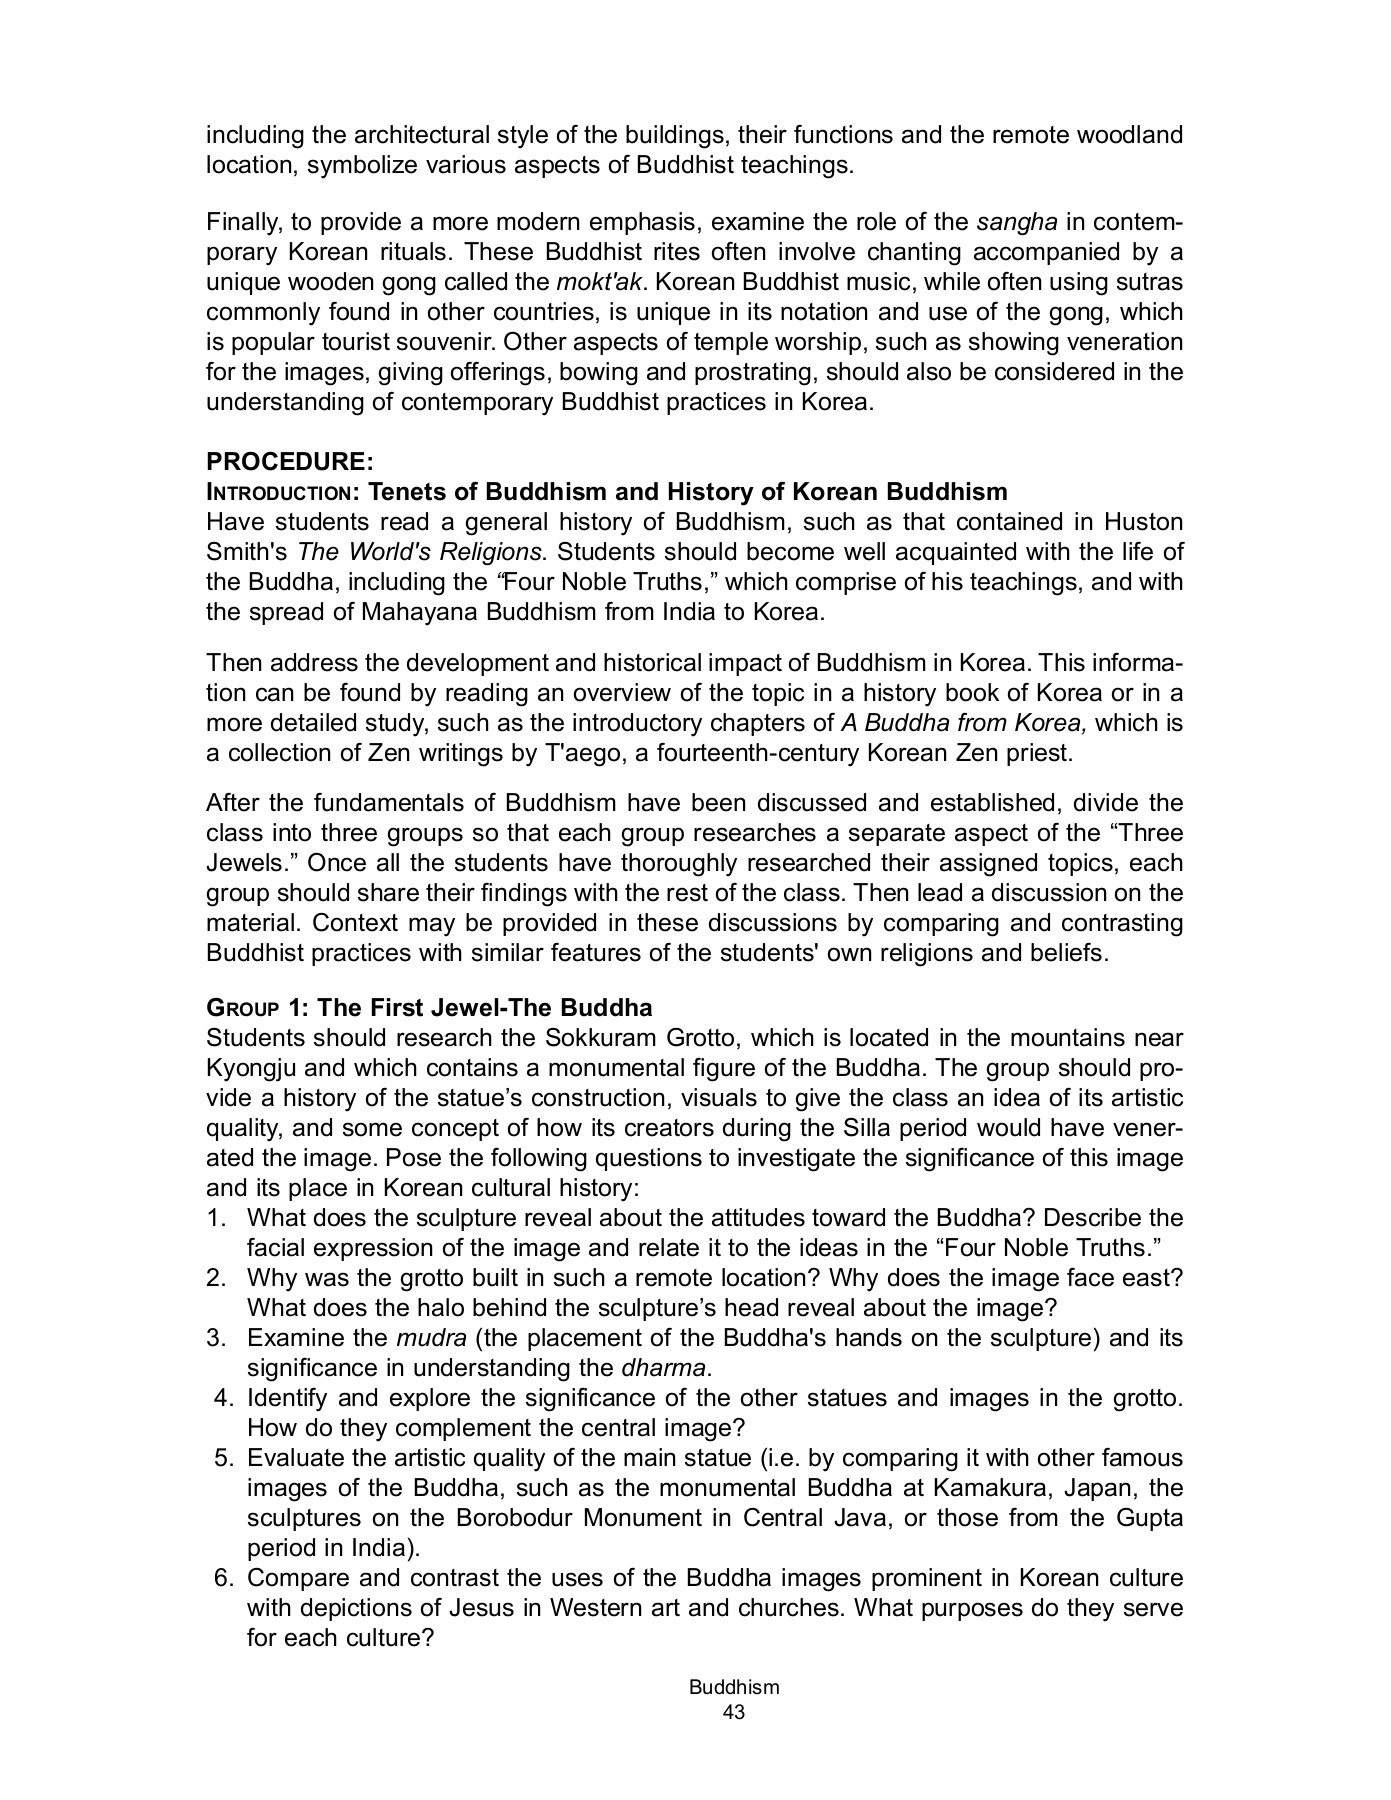 Buddhism huston smith essay paper contrast and compare essay examples